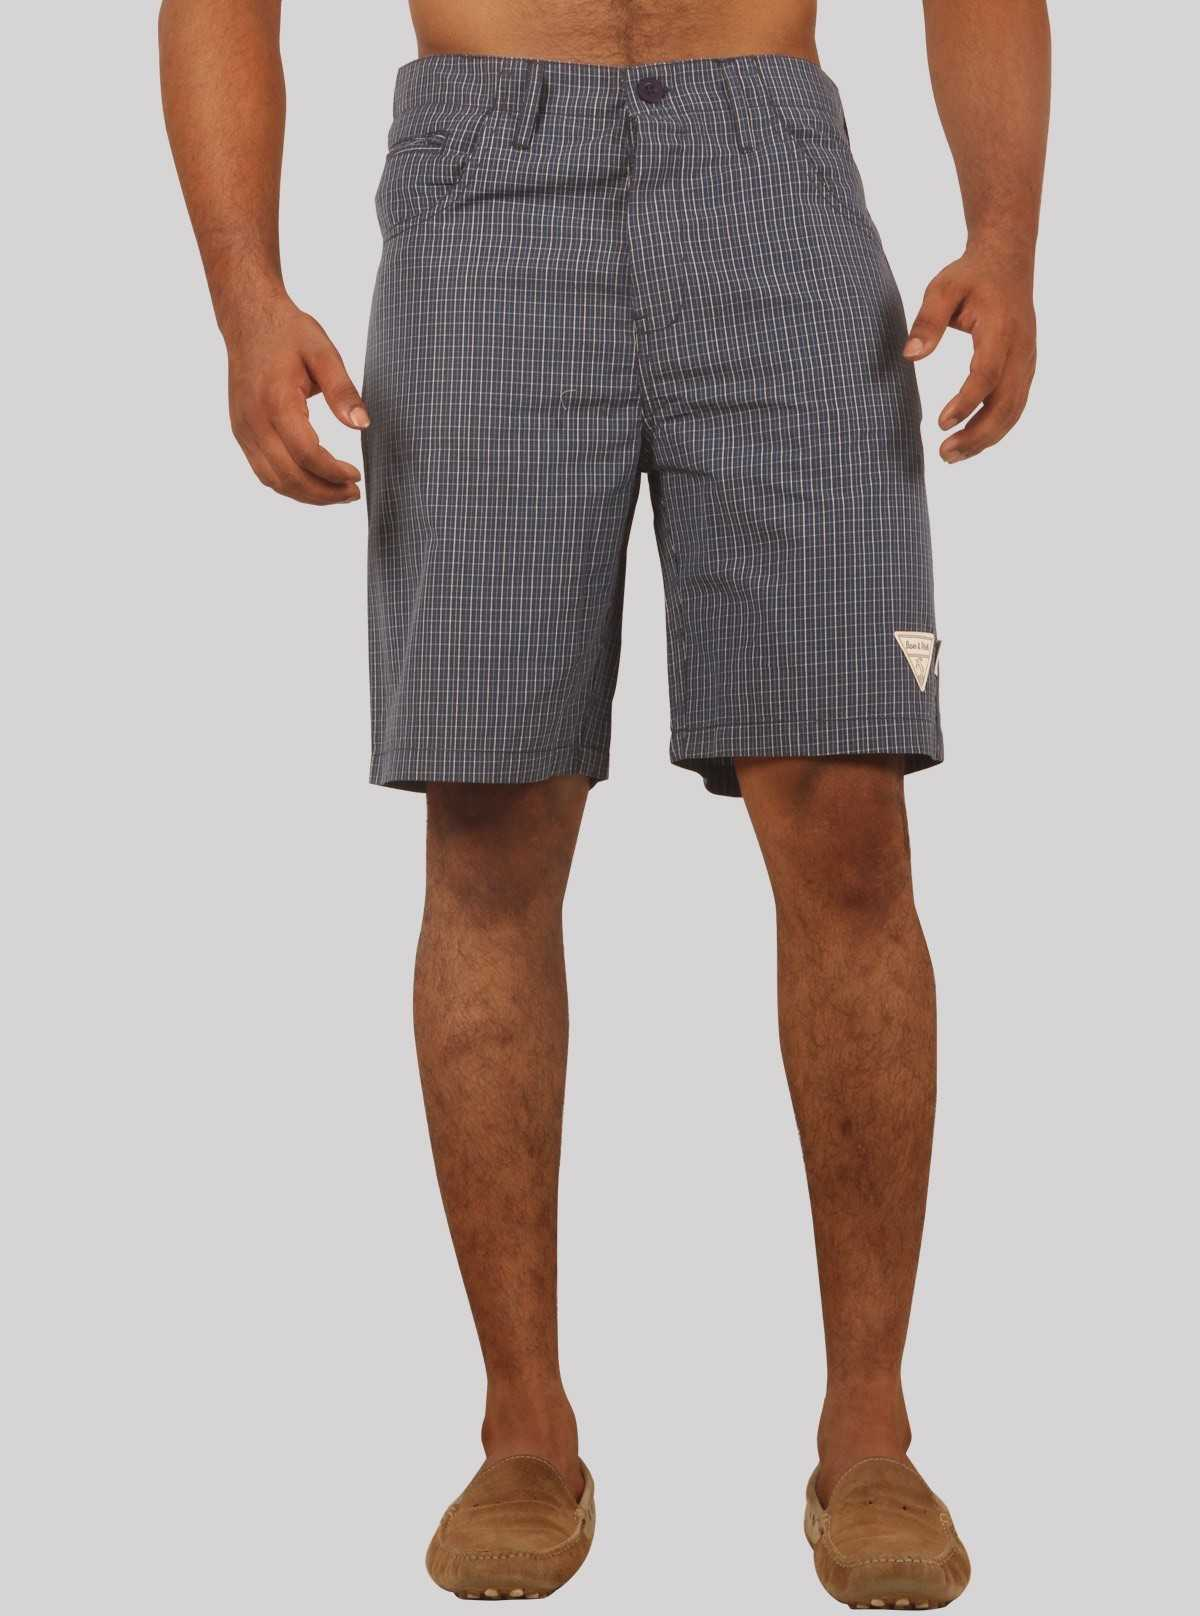 Blue Premium Woven Shorts Boer and Fitch - 1